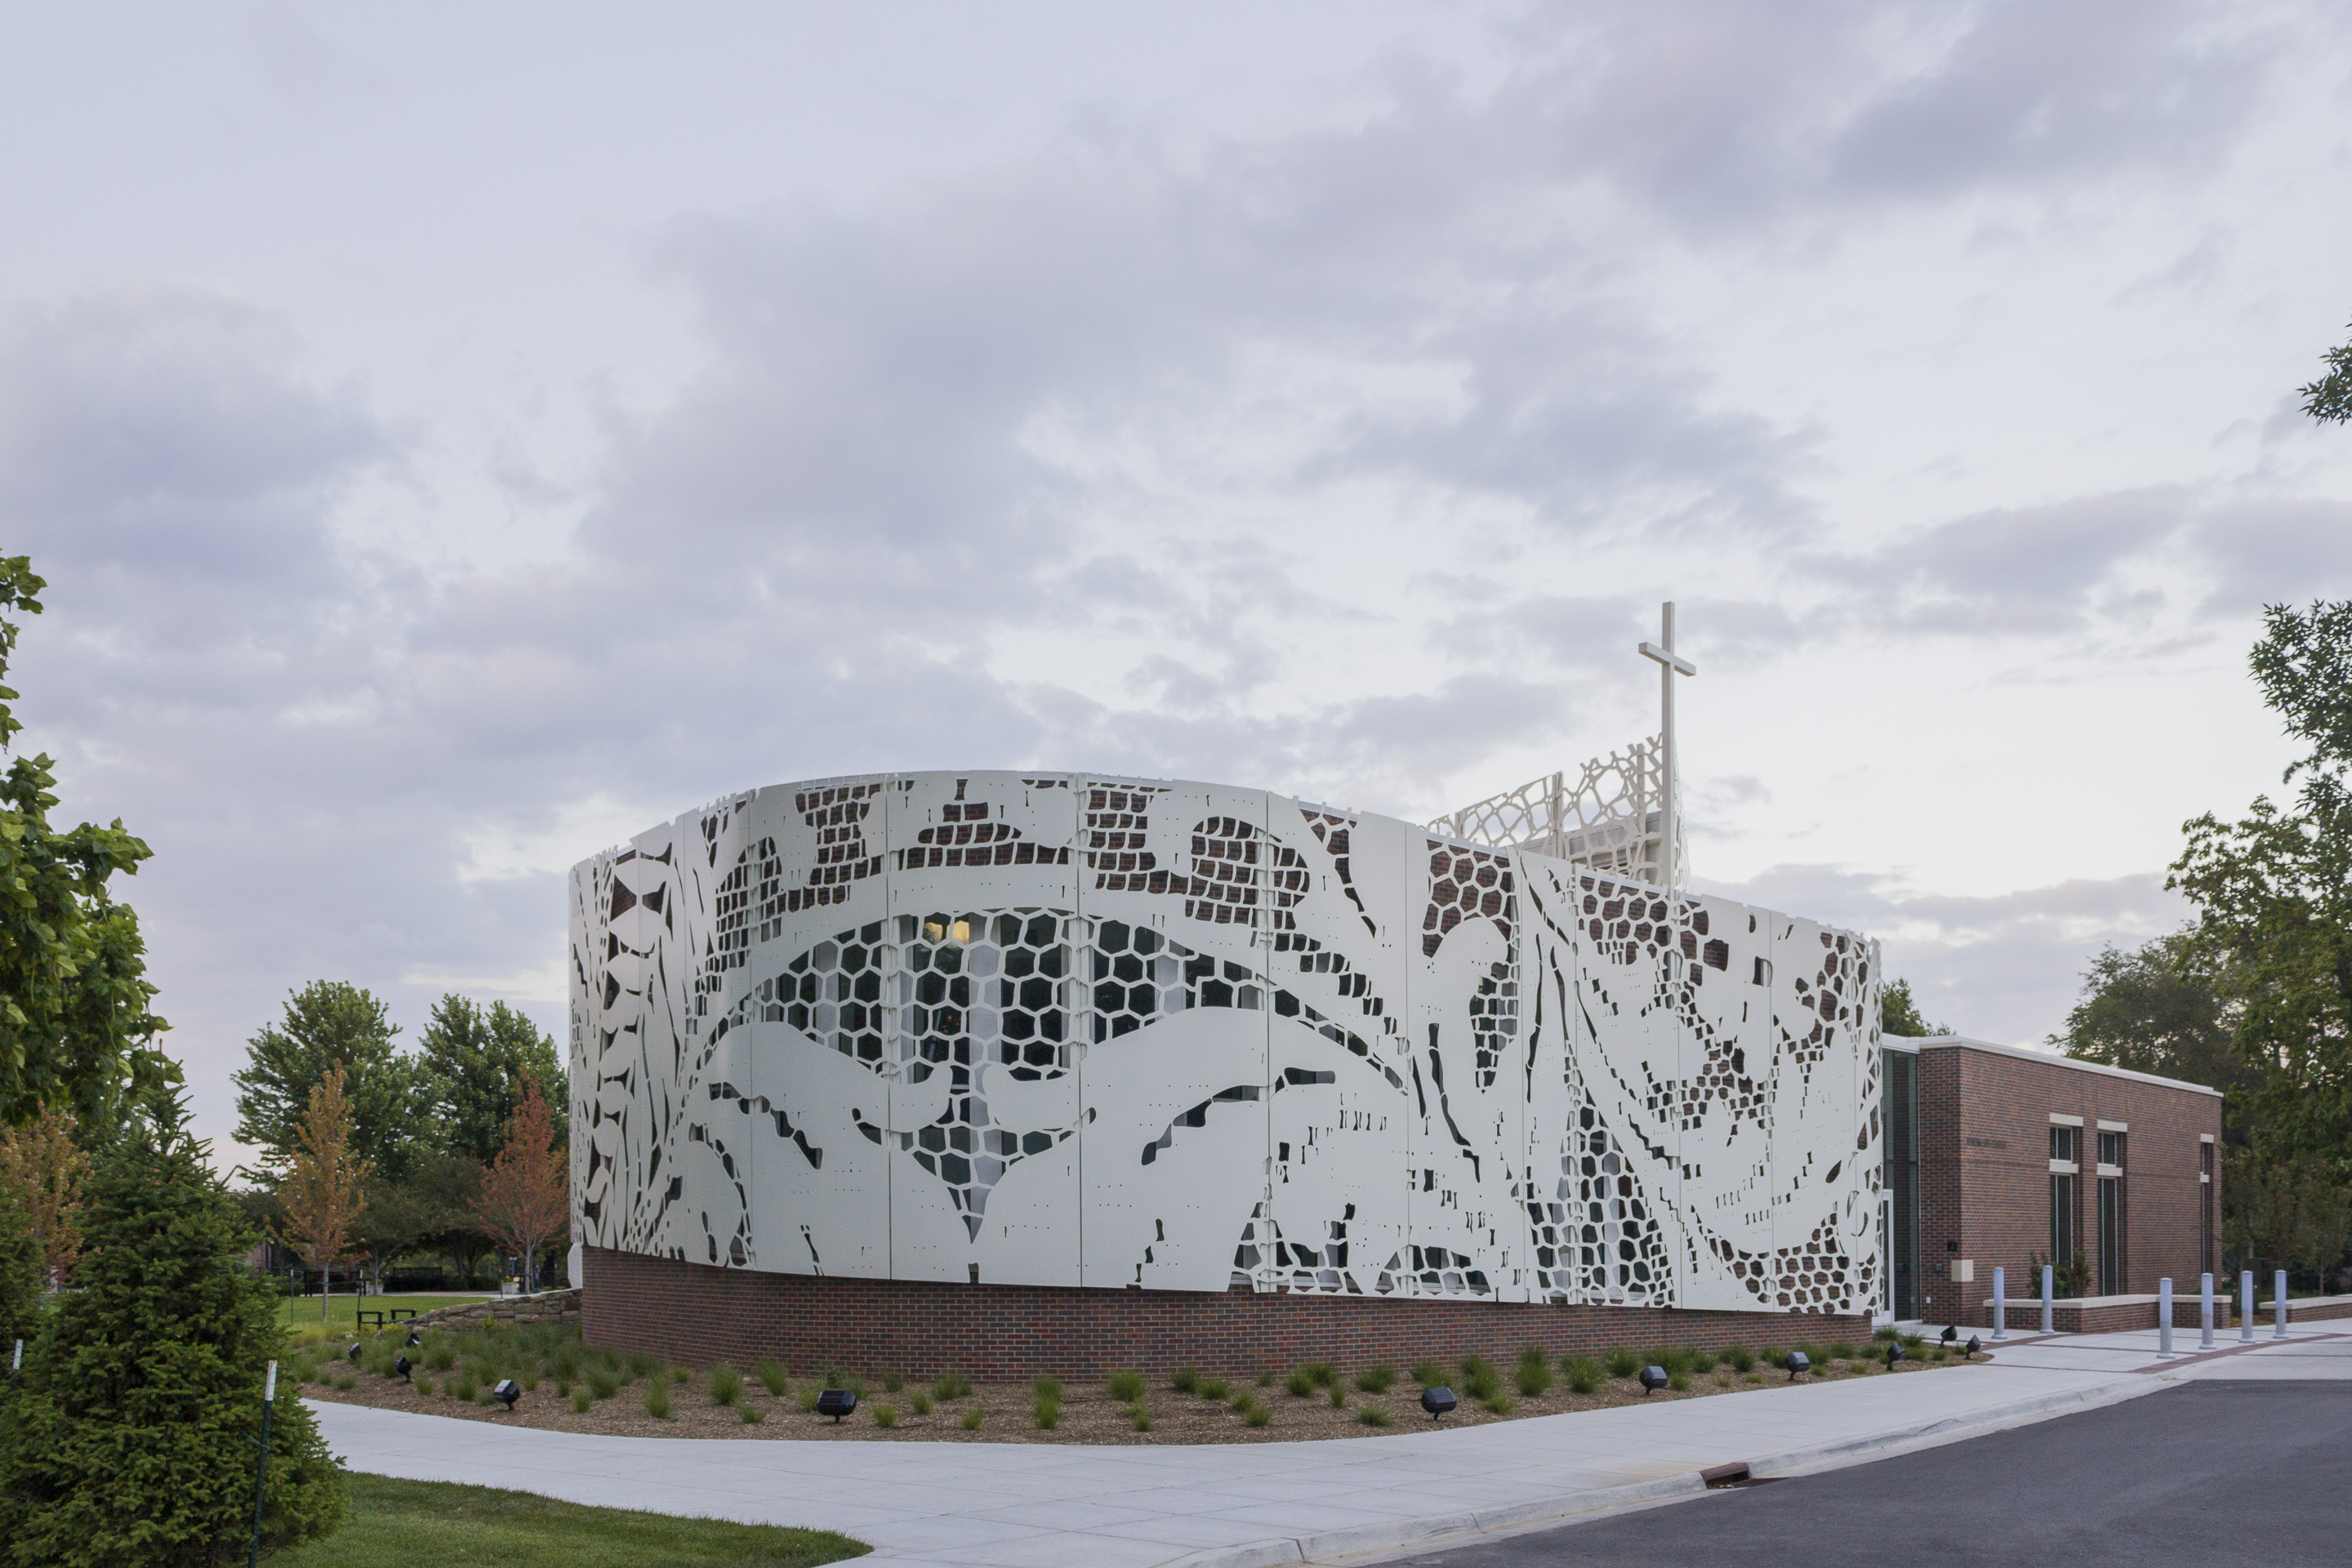 Lace patterns cut into plate aluminum and rolled for the curving facade at St. Teresa's Academy.